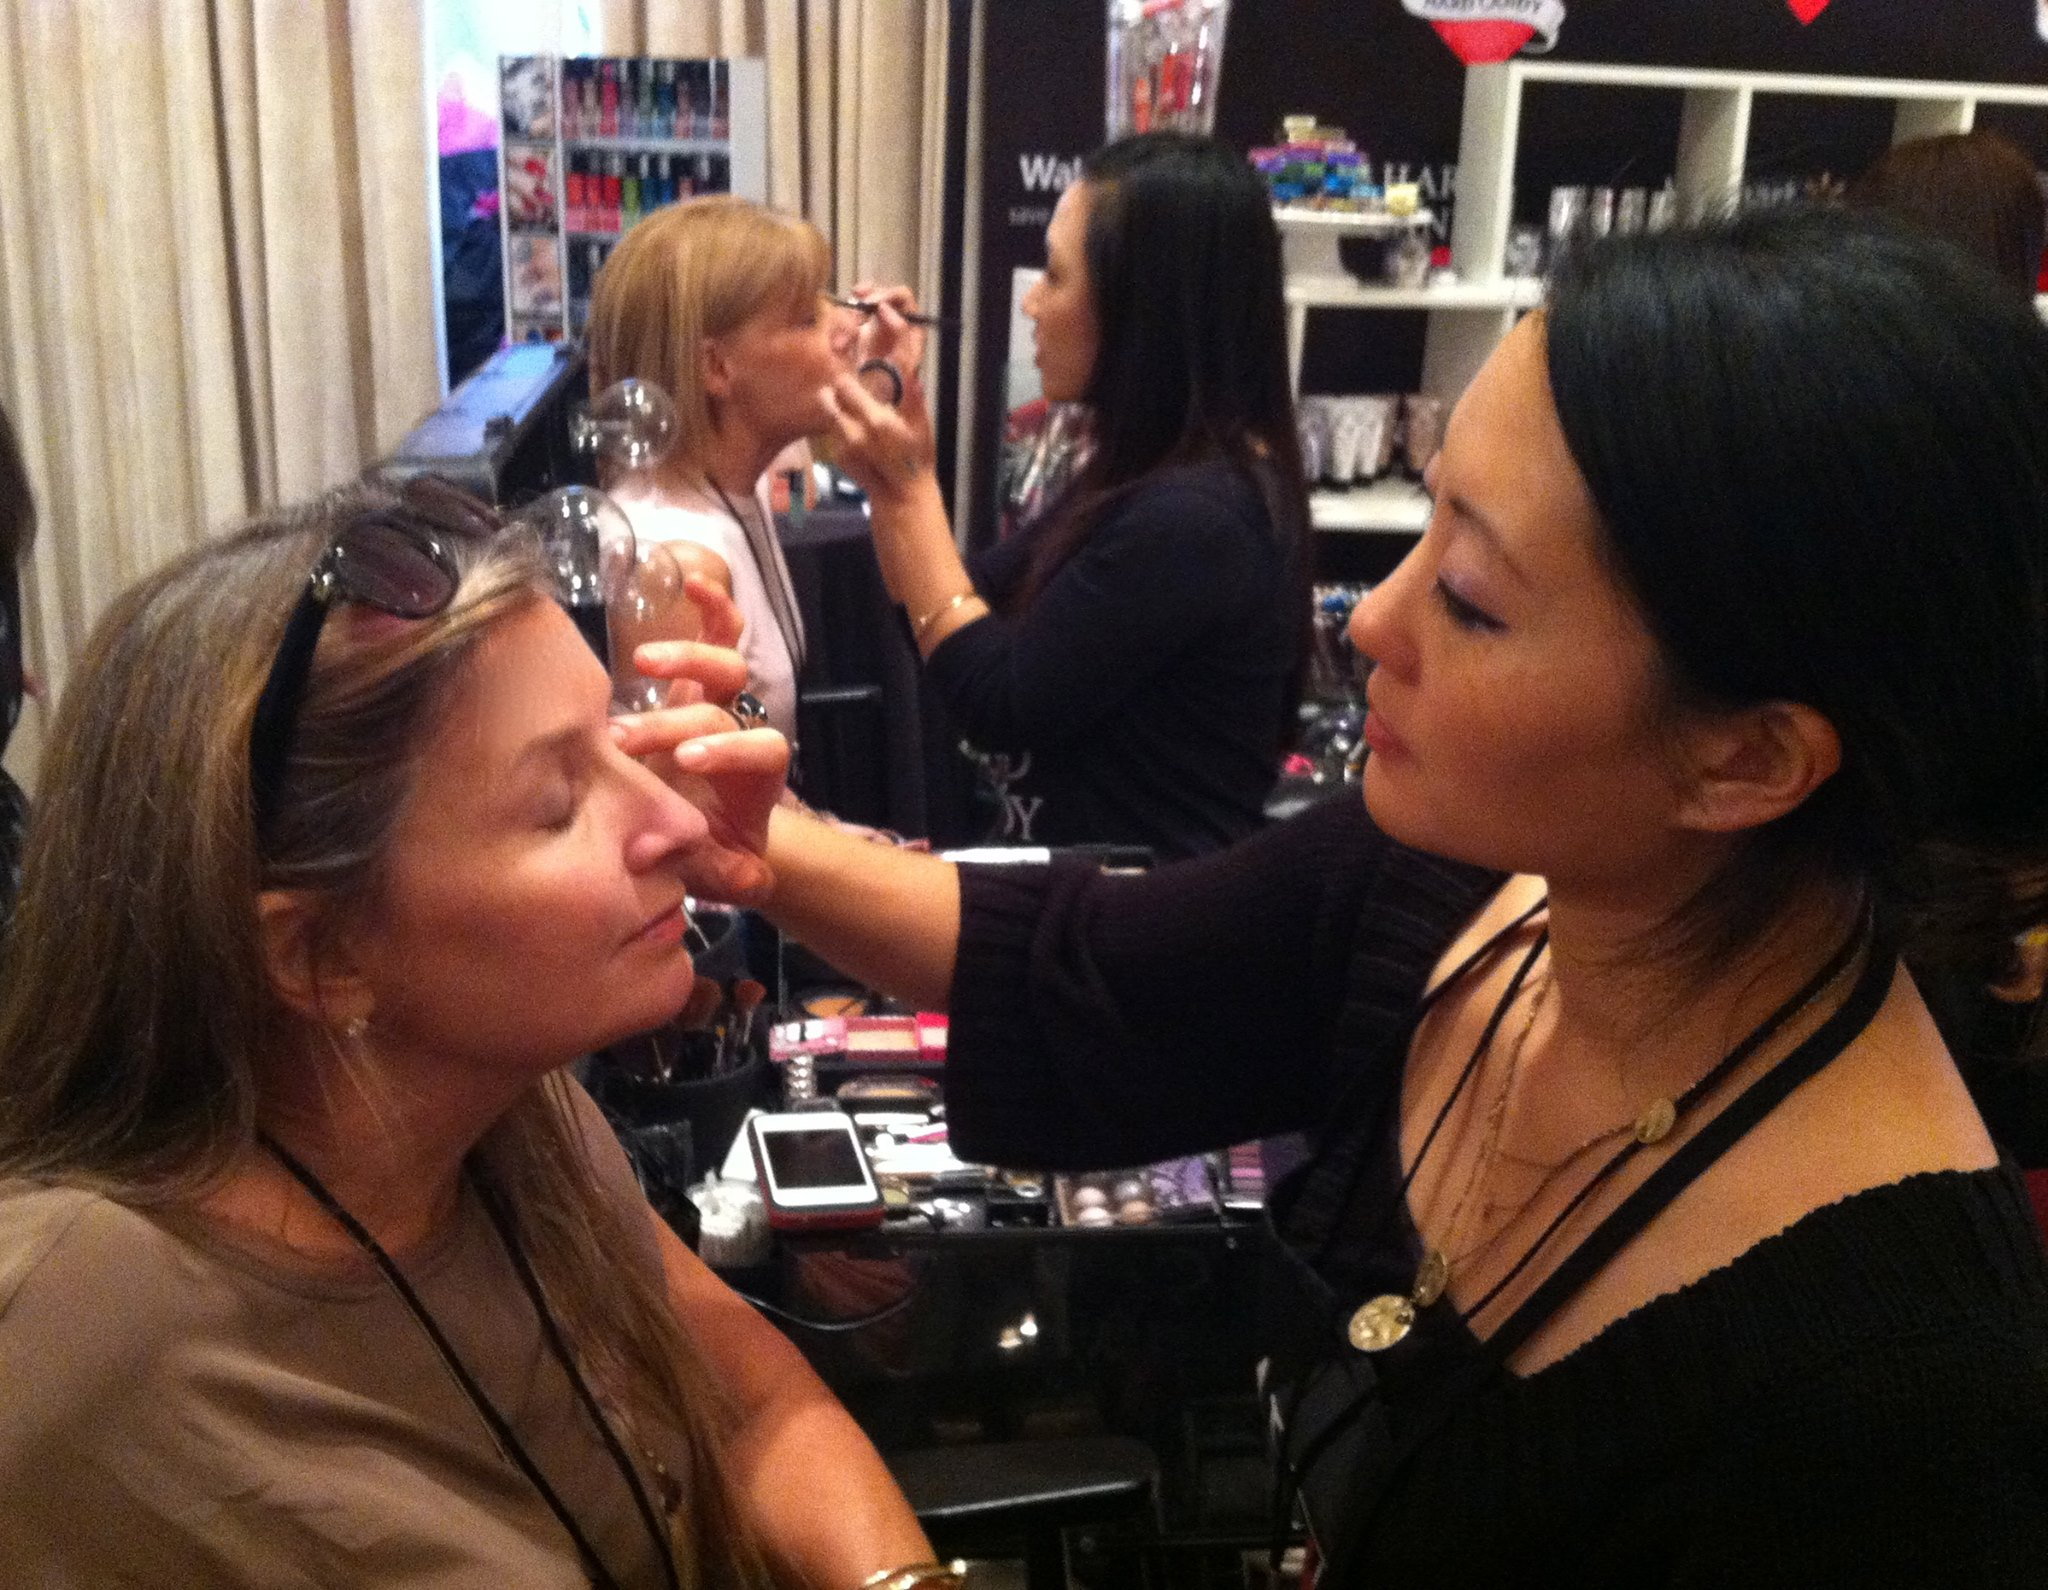 Kim makeover at Hard Candy SS14